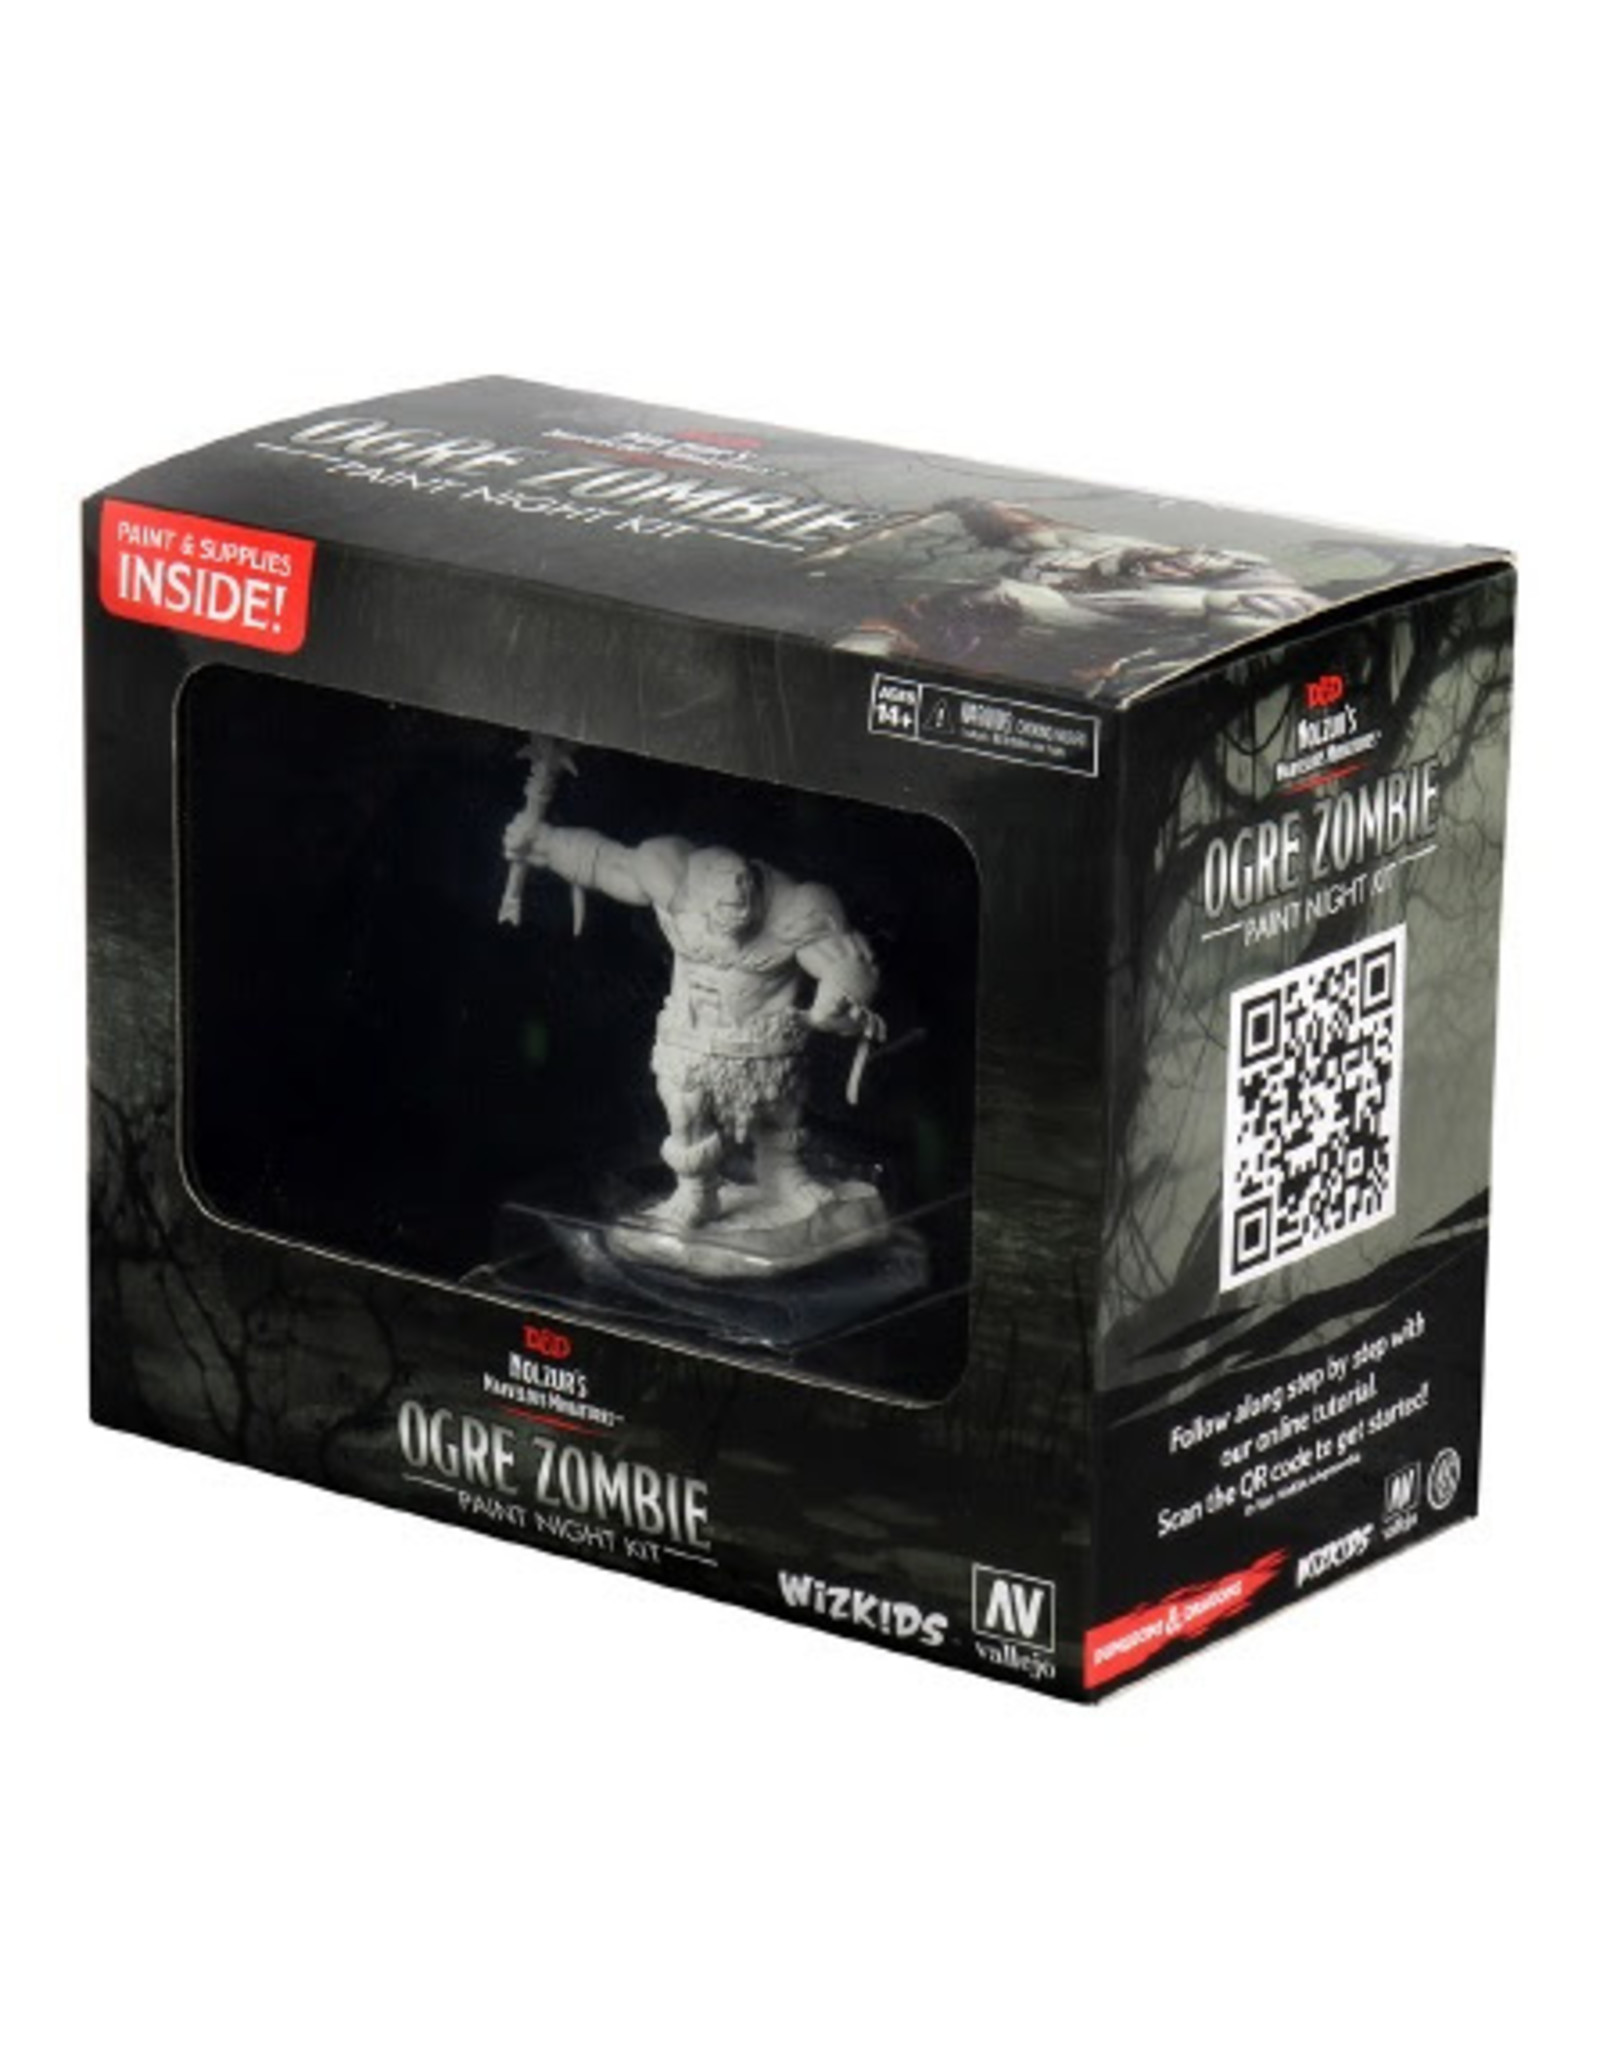 Wiz Kids WizKids Ogre Zombie Paint Night Kit